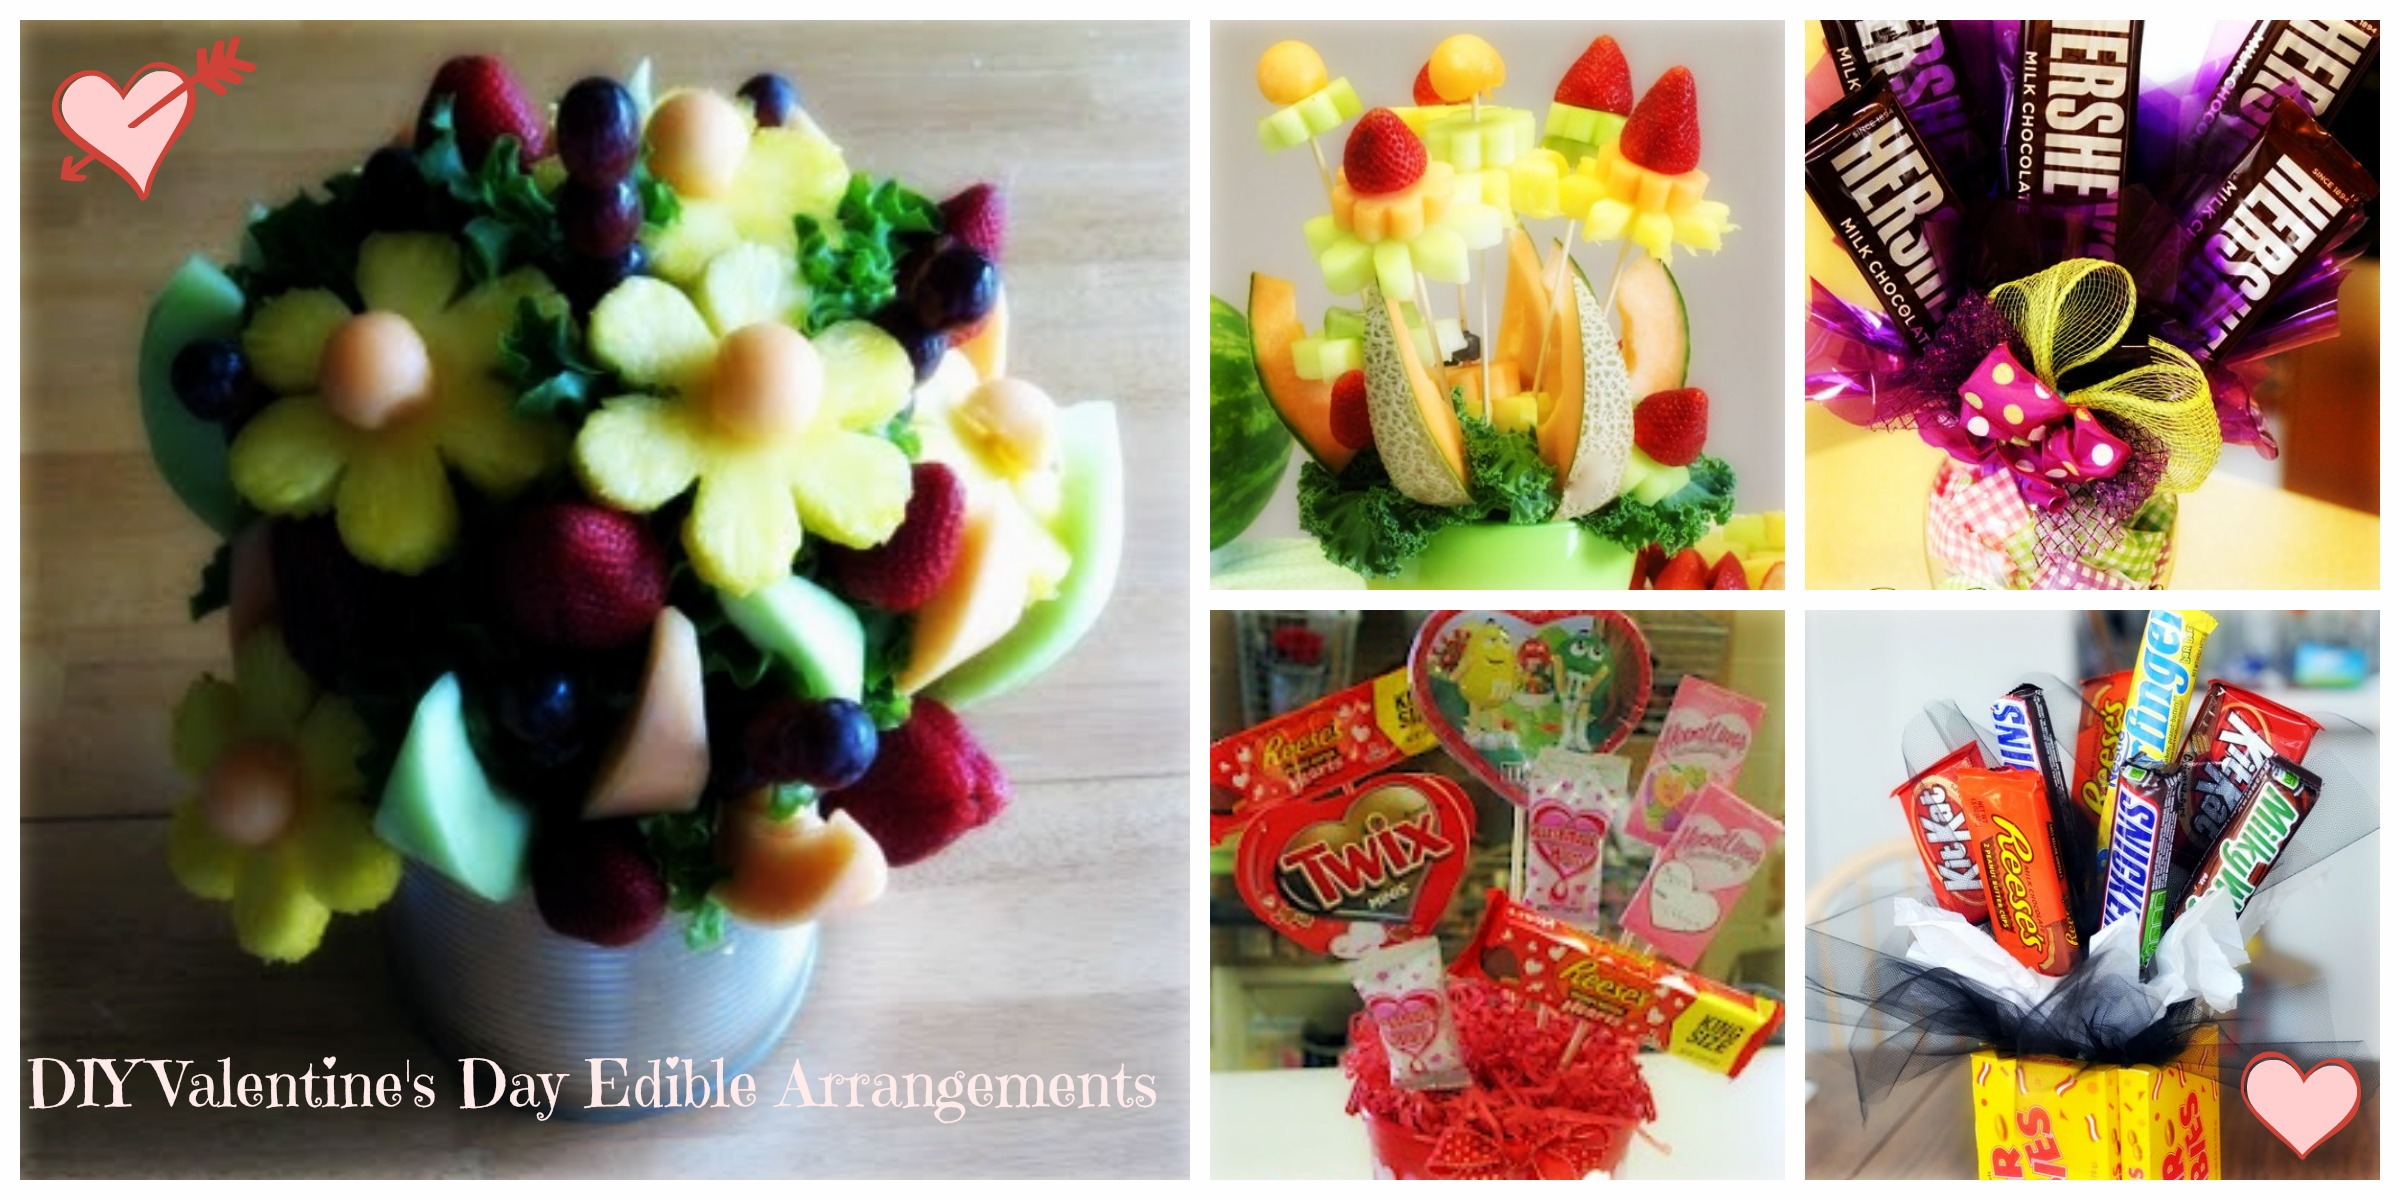 Of candy edible arrangements and 2 photos of fruit edible bouquets